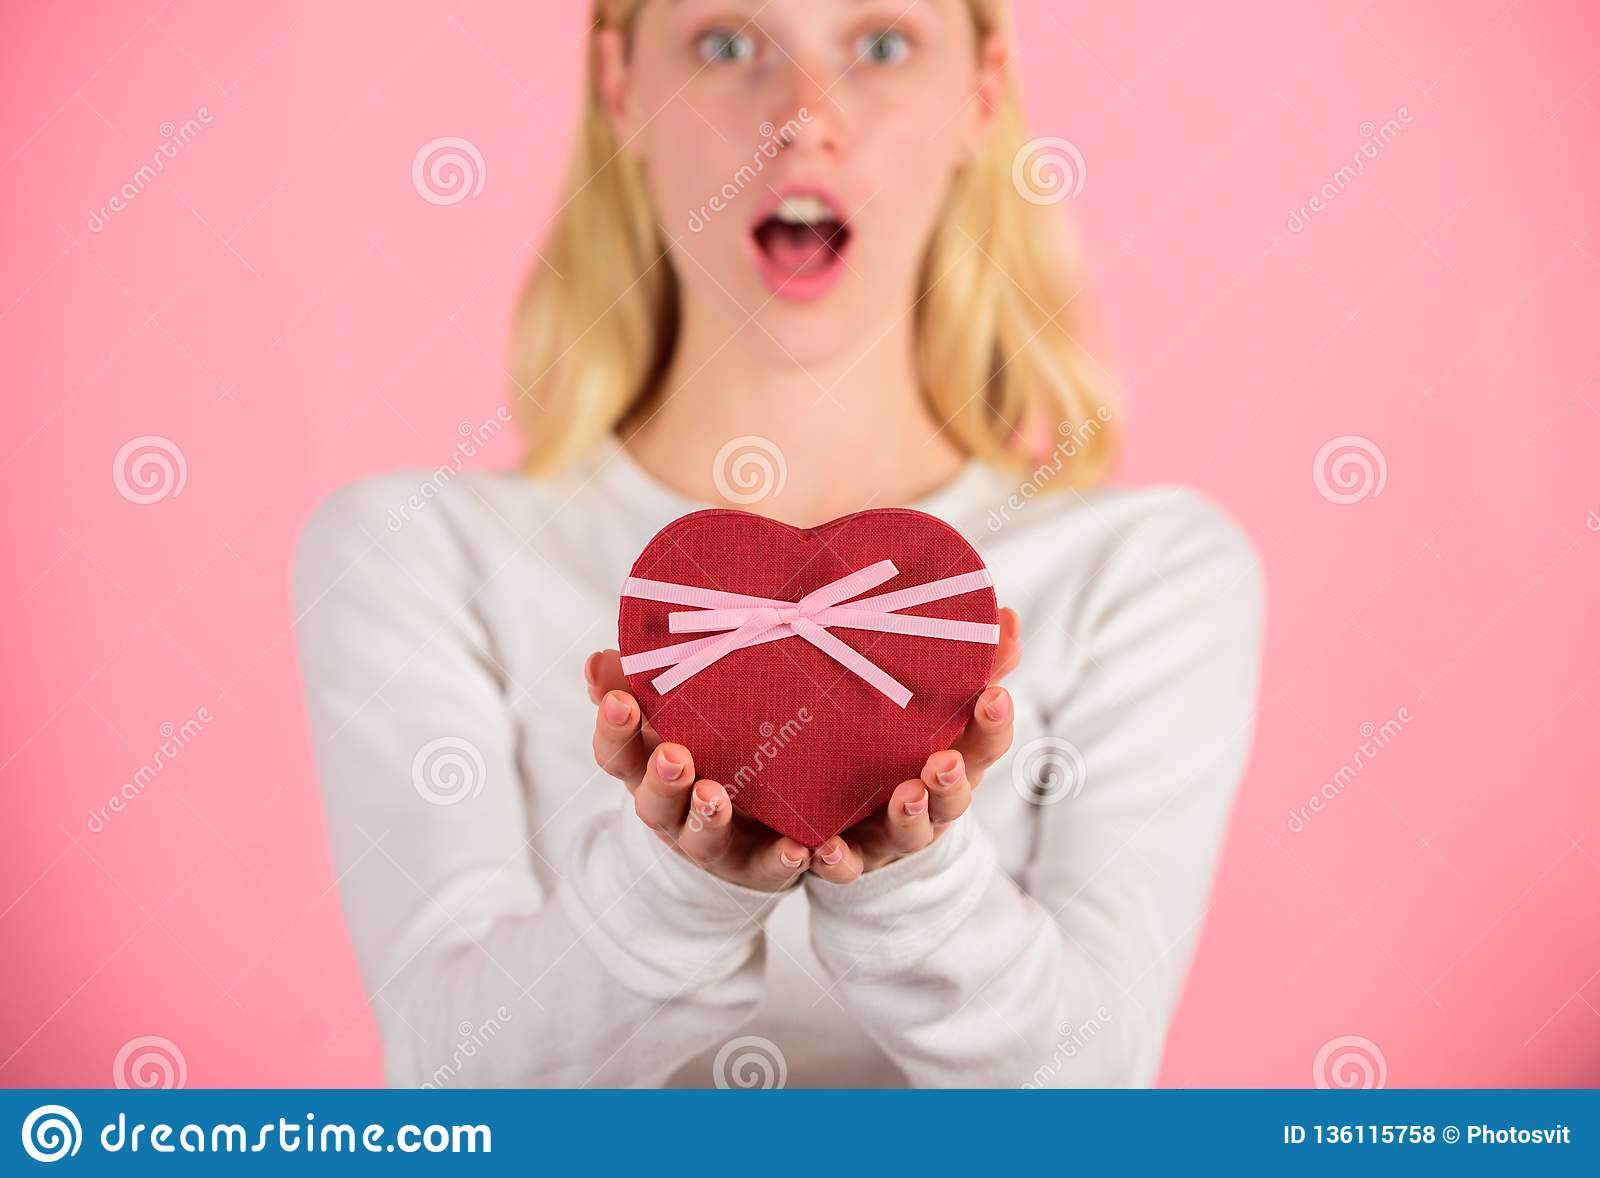 Female Hands Hold Gift Box Prepared Something Special For Him